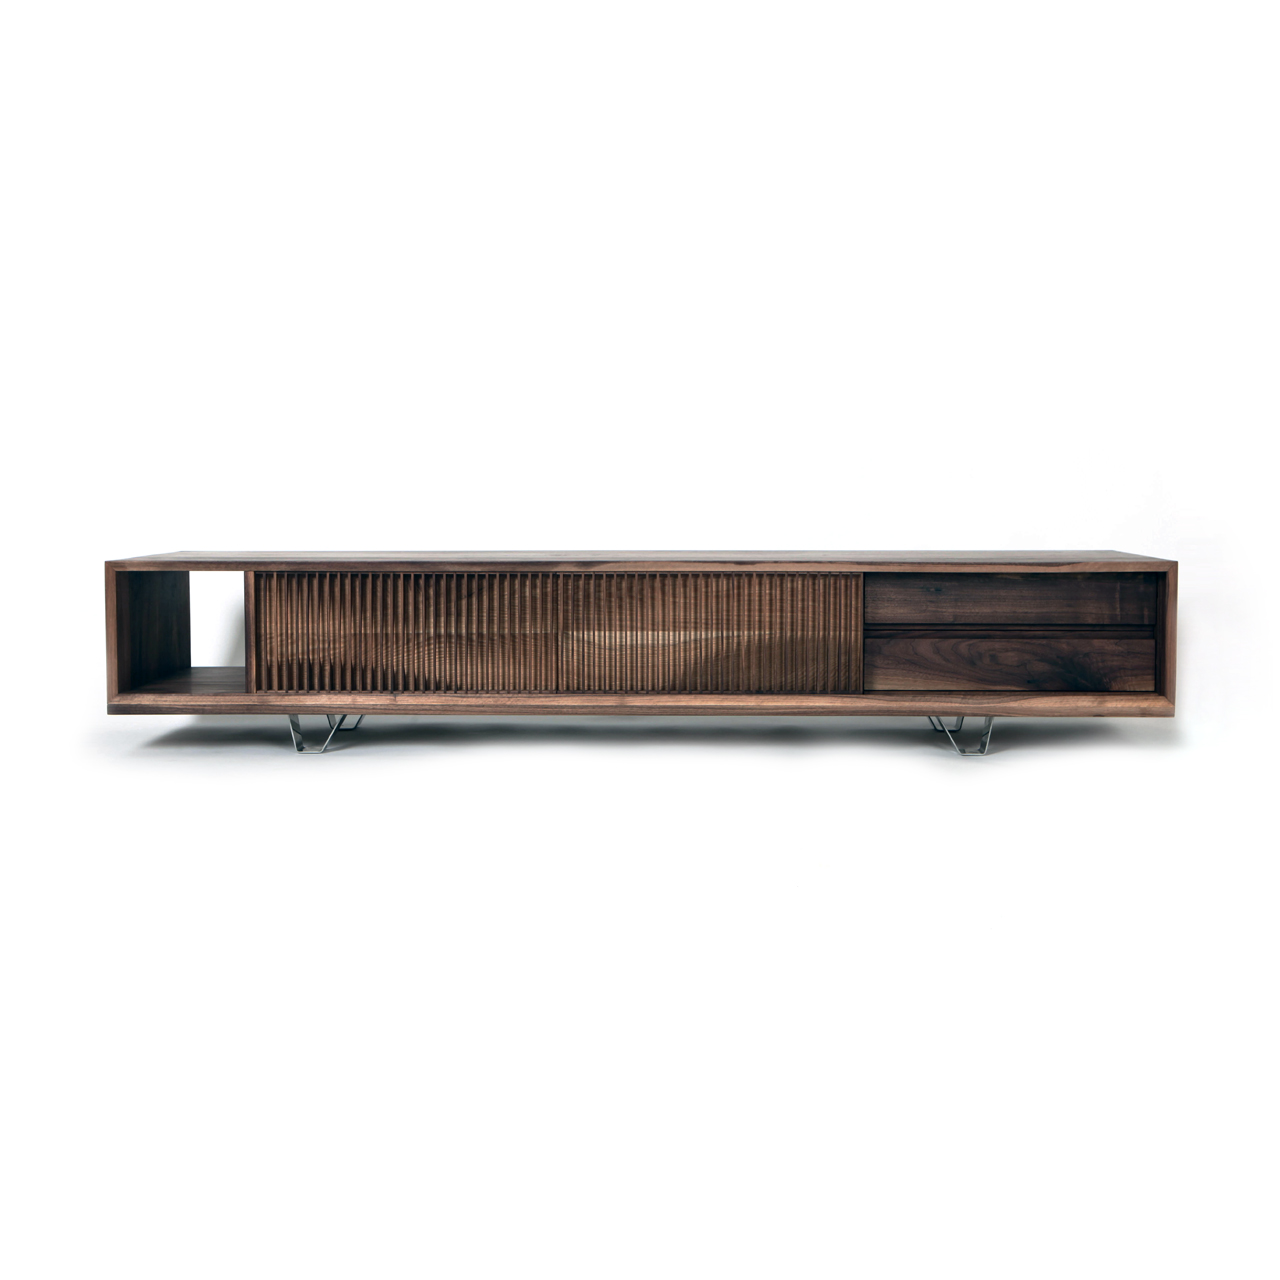 KINETIC/Sideboard